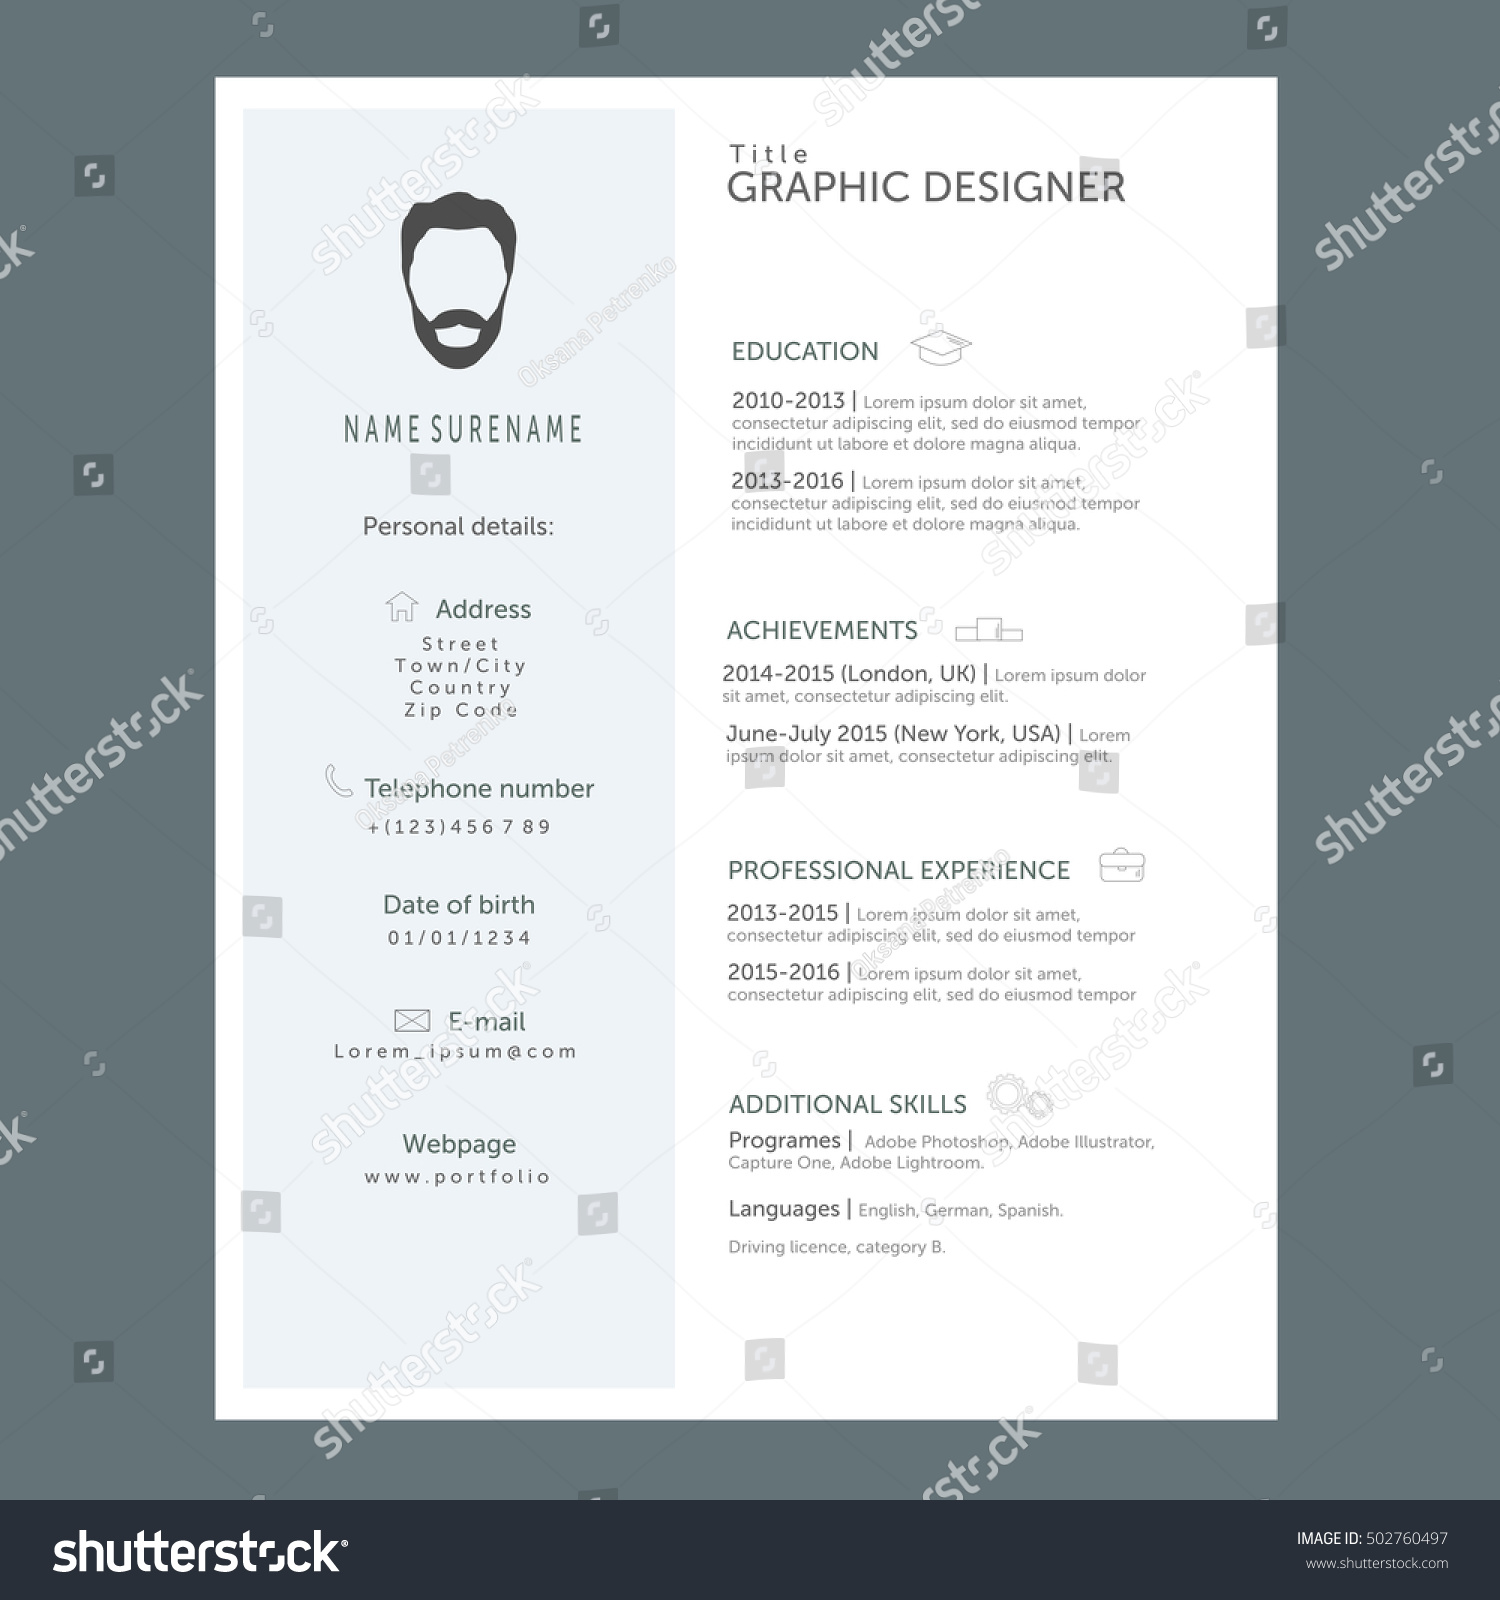 Cv Format Norsk  Example Of Cv And Application Navno  Cv Templates And  Guidelines Europass  Writing A Good Cv Navno  Norway Guide Job  Applications In